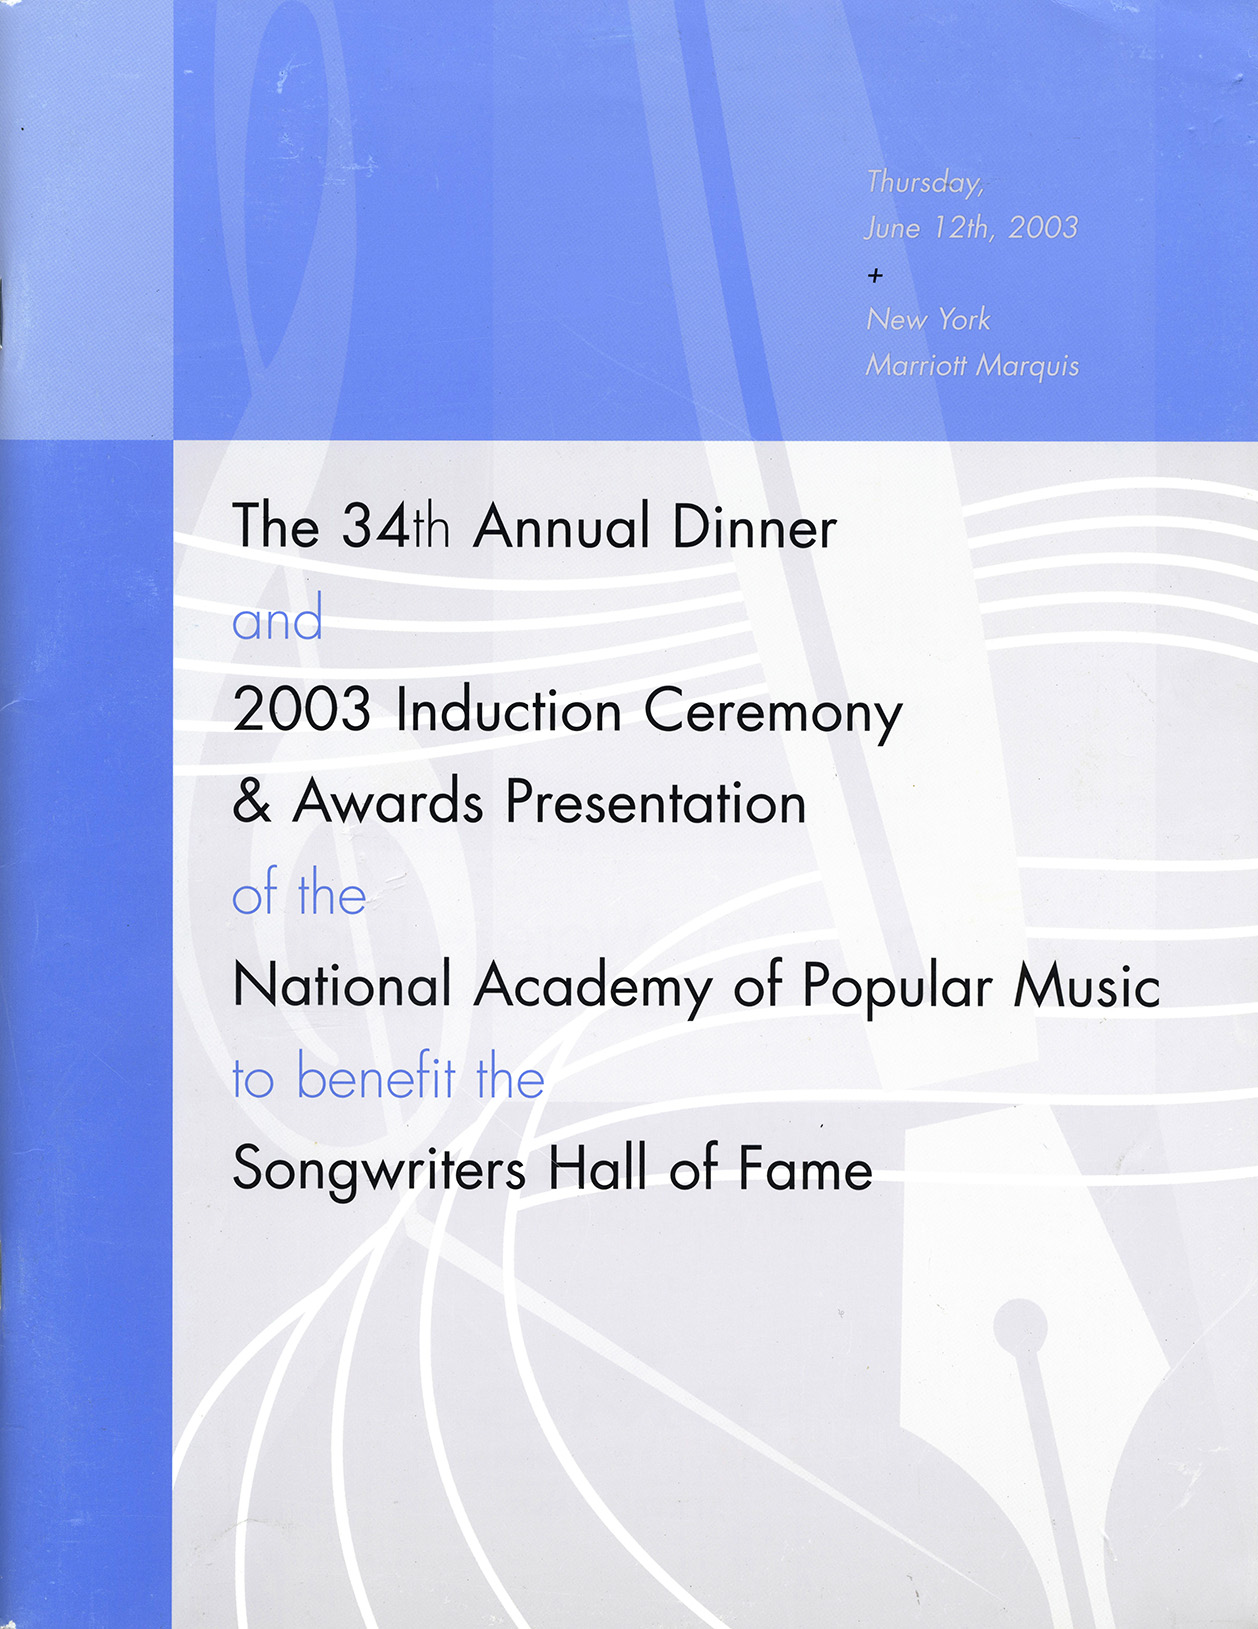 Songwriter's Hall Of Fame program (USA)